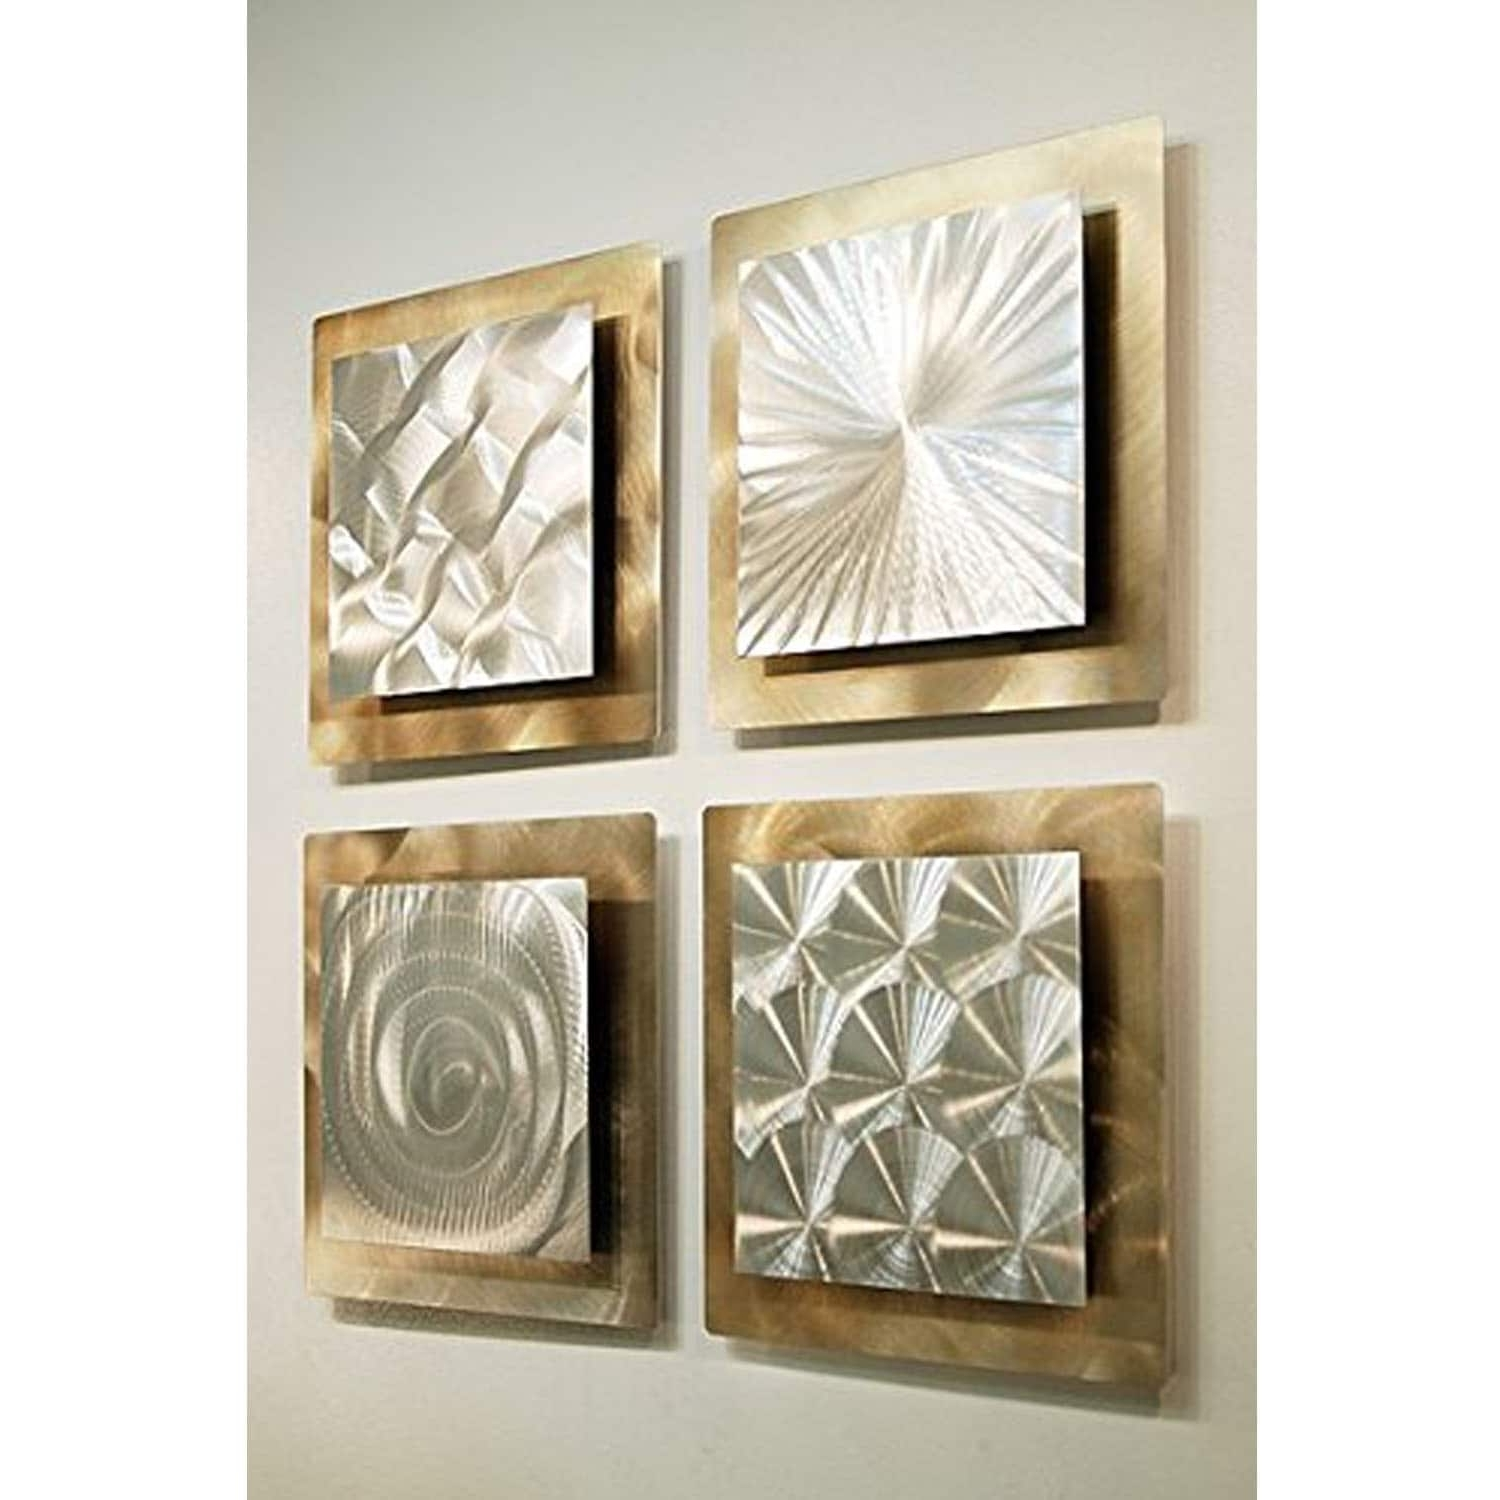 Statements2000 Set Of 4 Gold / Silver Metal Wall Art Accentjon Throughout Most Current Metal Wall Accents (Gallery 1 of 15)